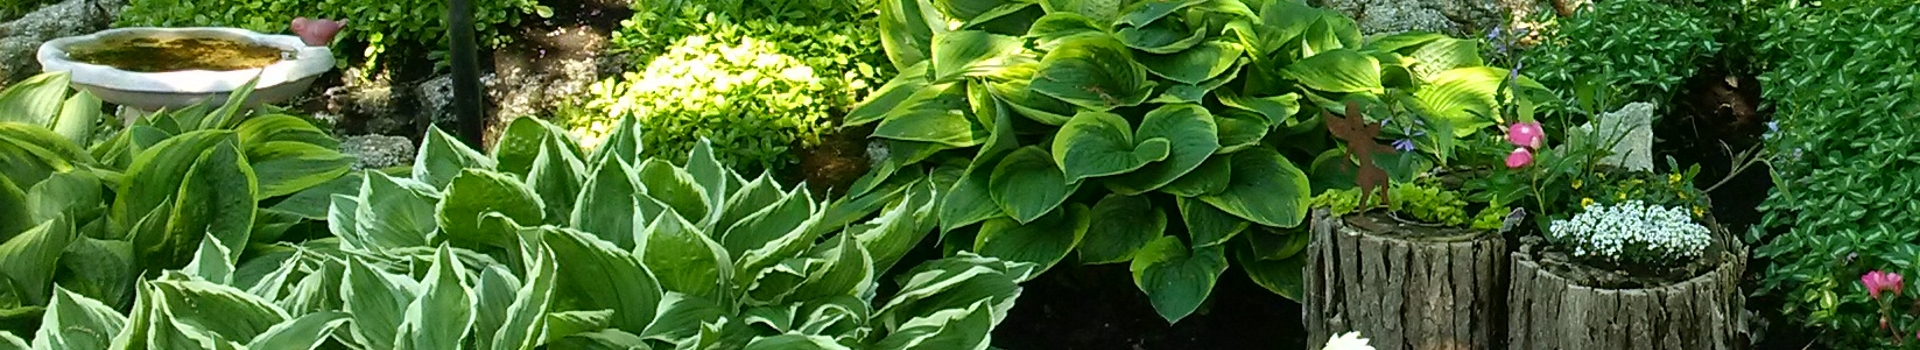 A photo of a garden with hostas and a bird bath.